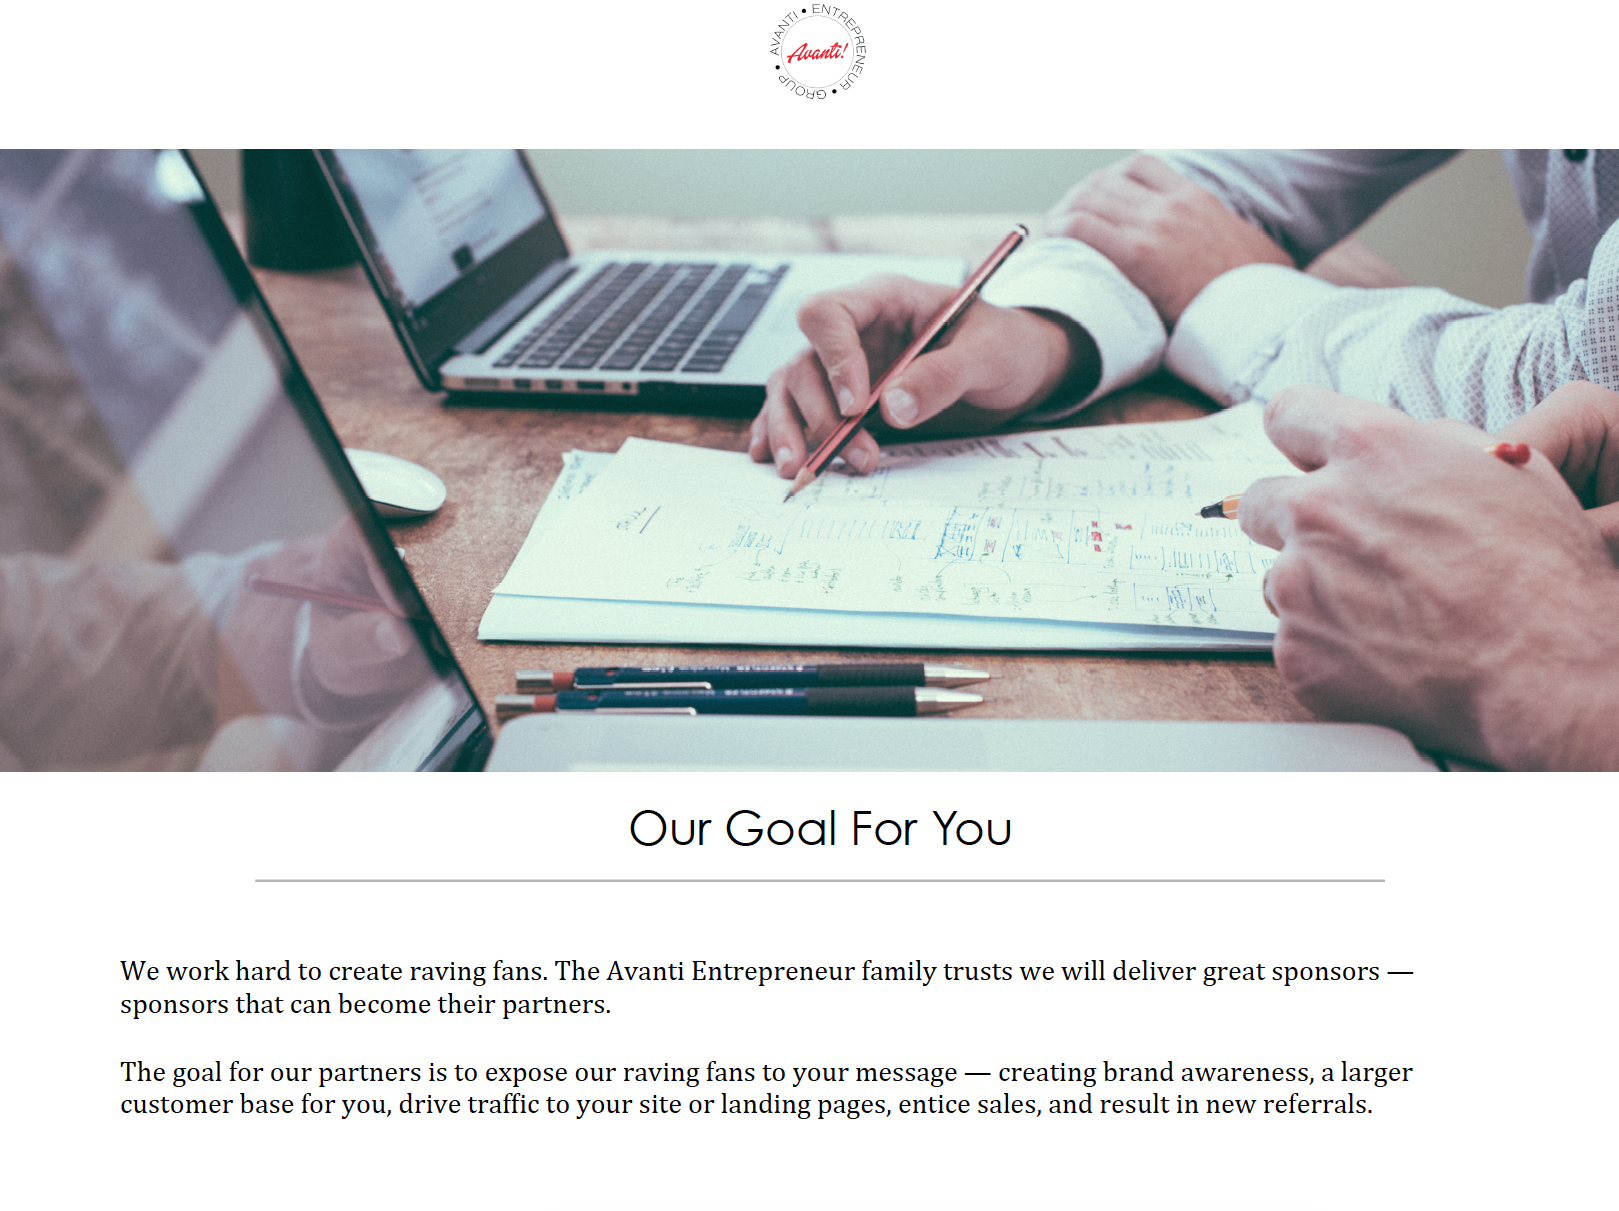 Avanti Entrepreneur Group: Our Goal for You